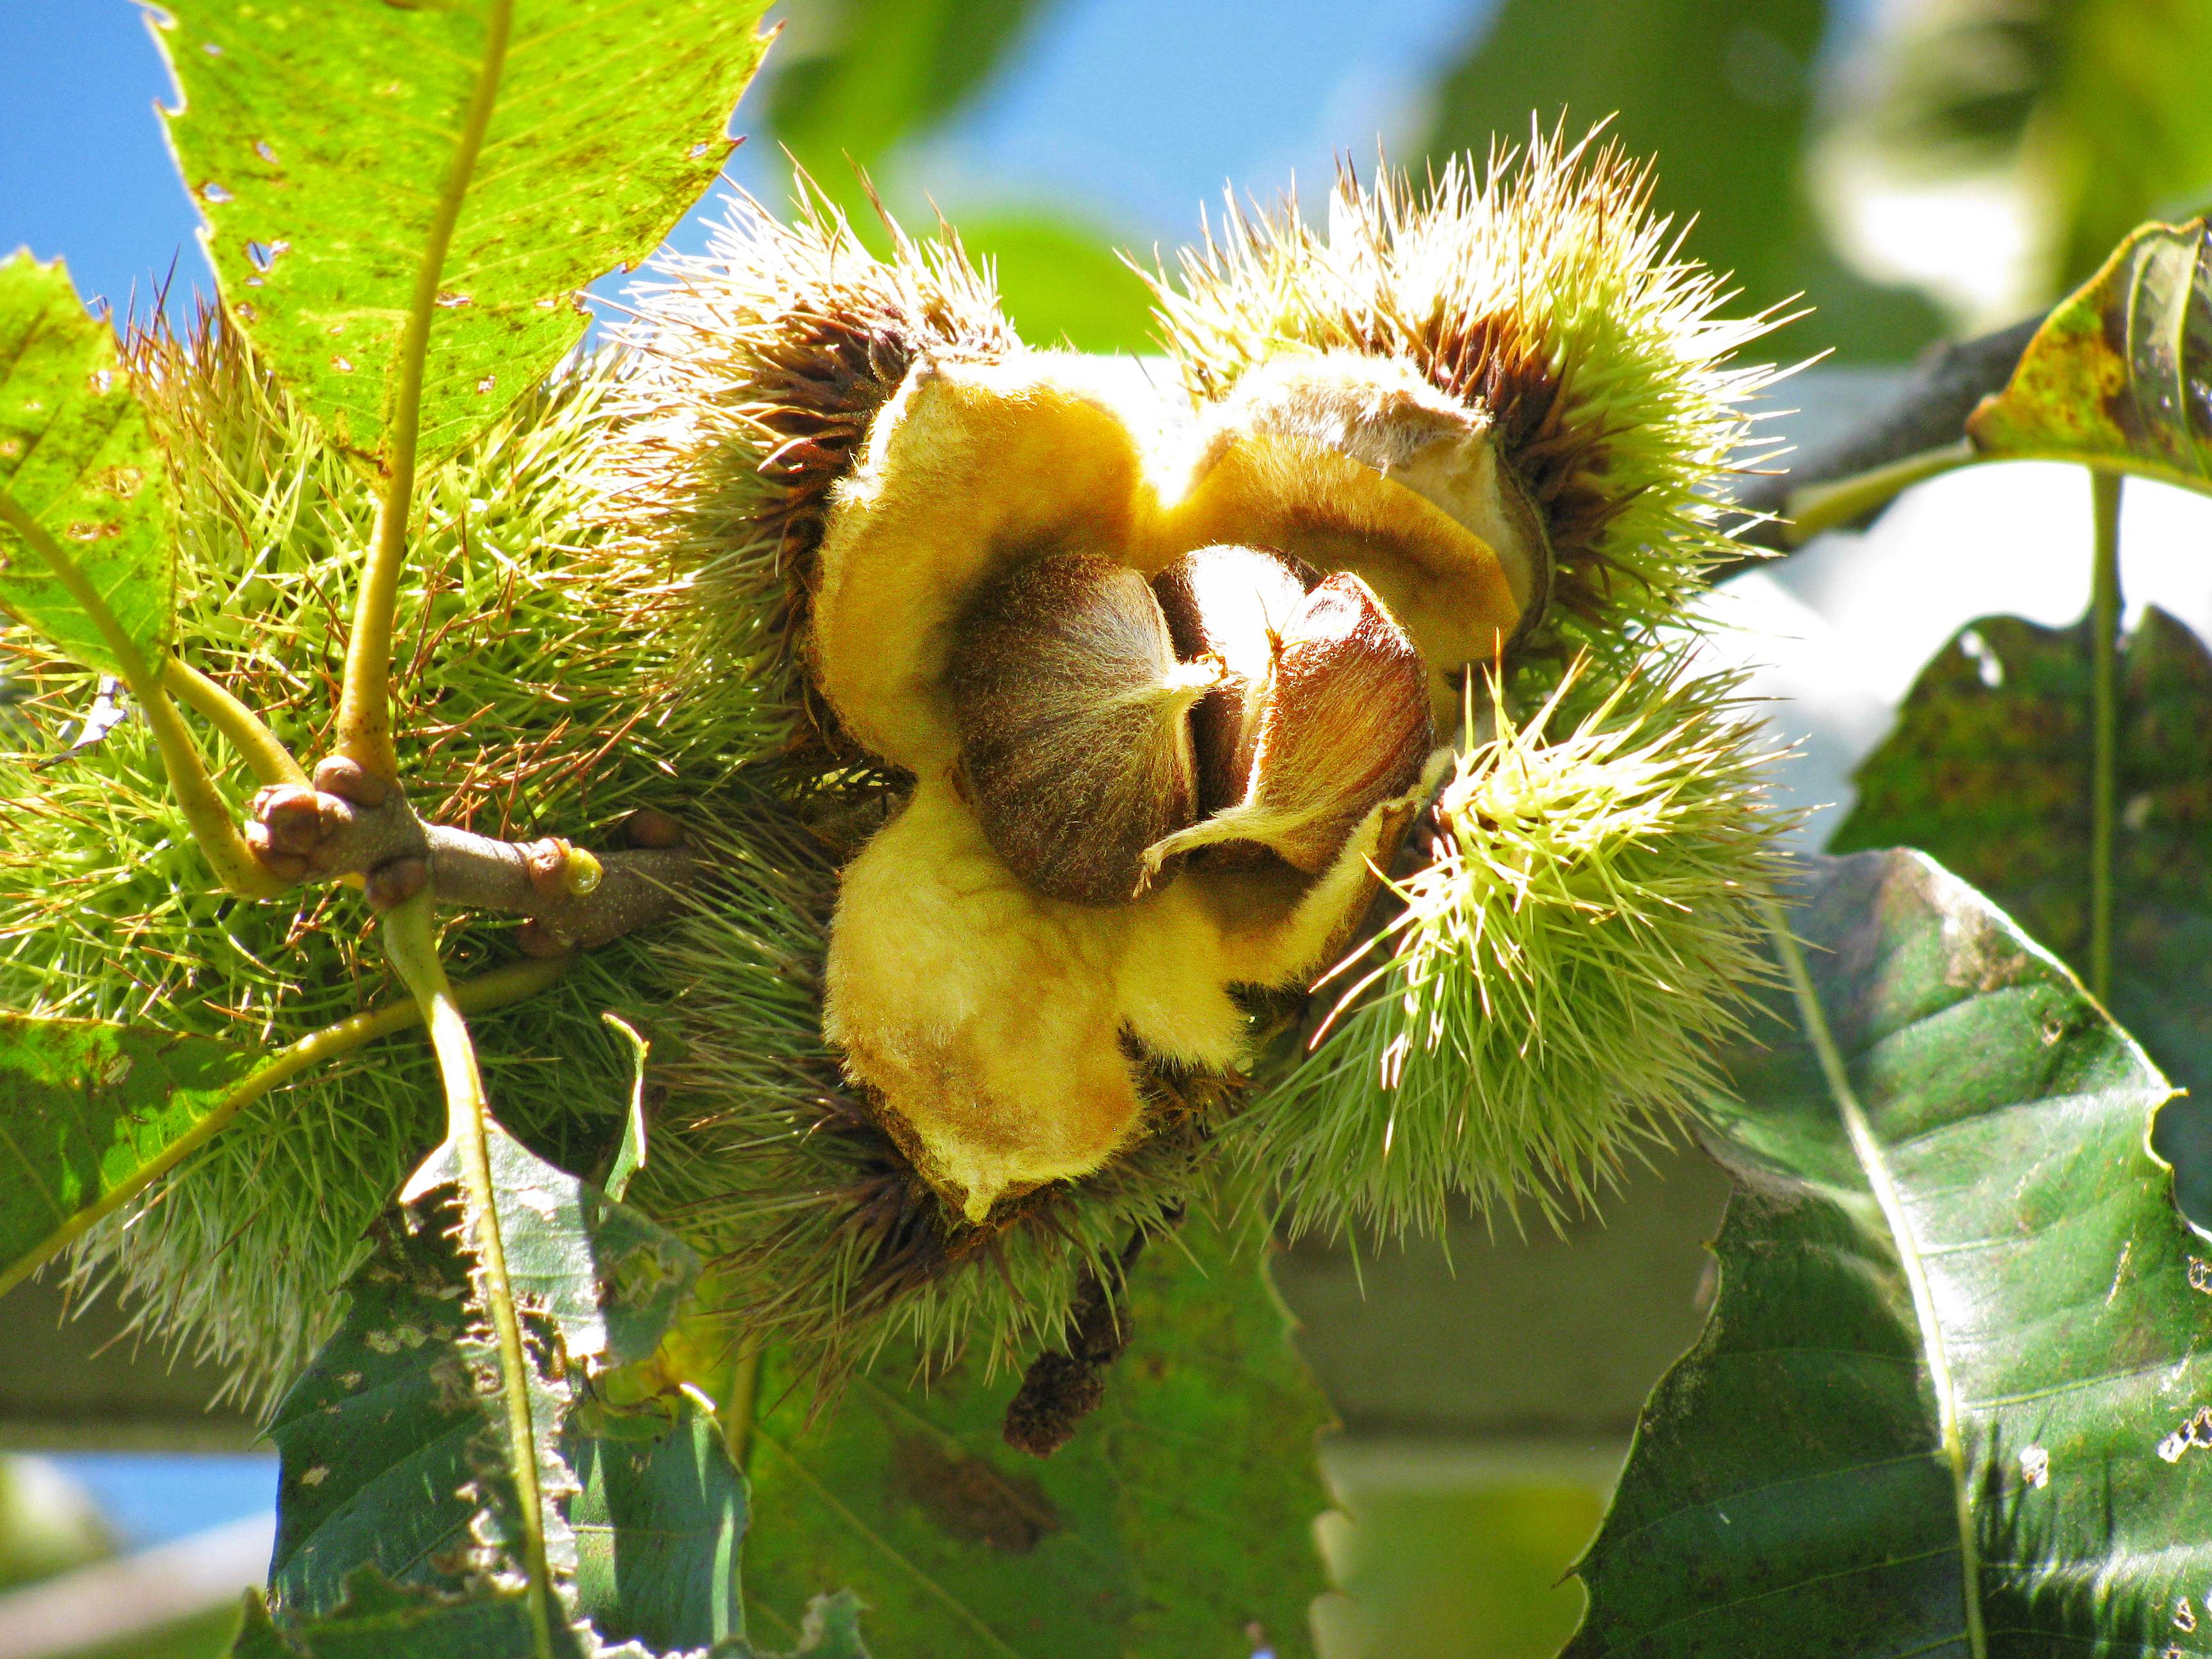 chestnut blight and american chestnut trees essay Tree diseases: american chestnut blight introduction chestnut blight meanwhile, infections of american chestnut trees became more widespread the disease appeared simultaneously in numerous locations across the eastern united states.